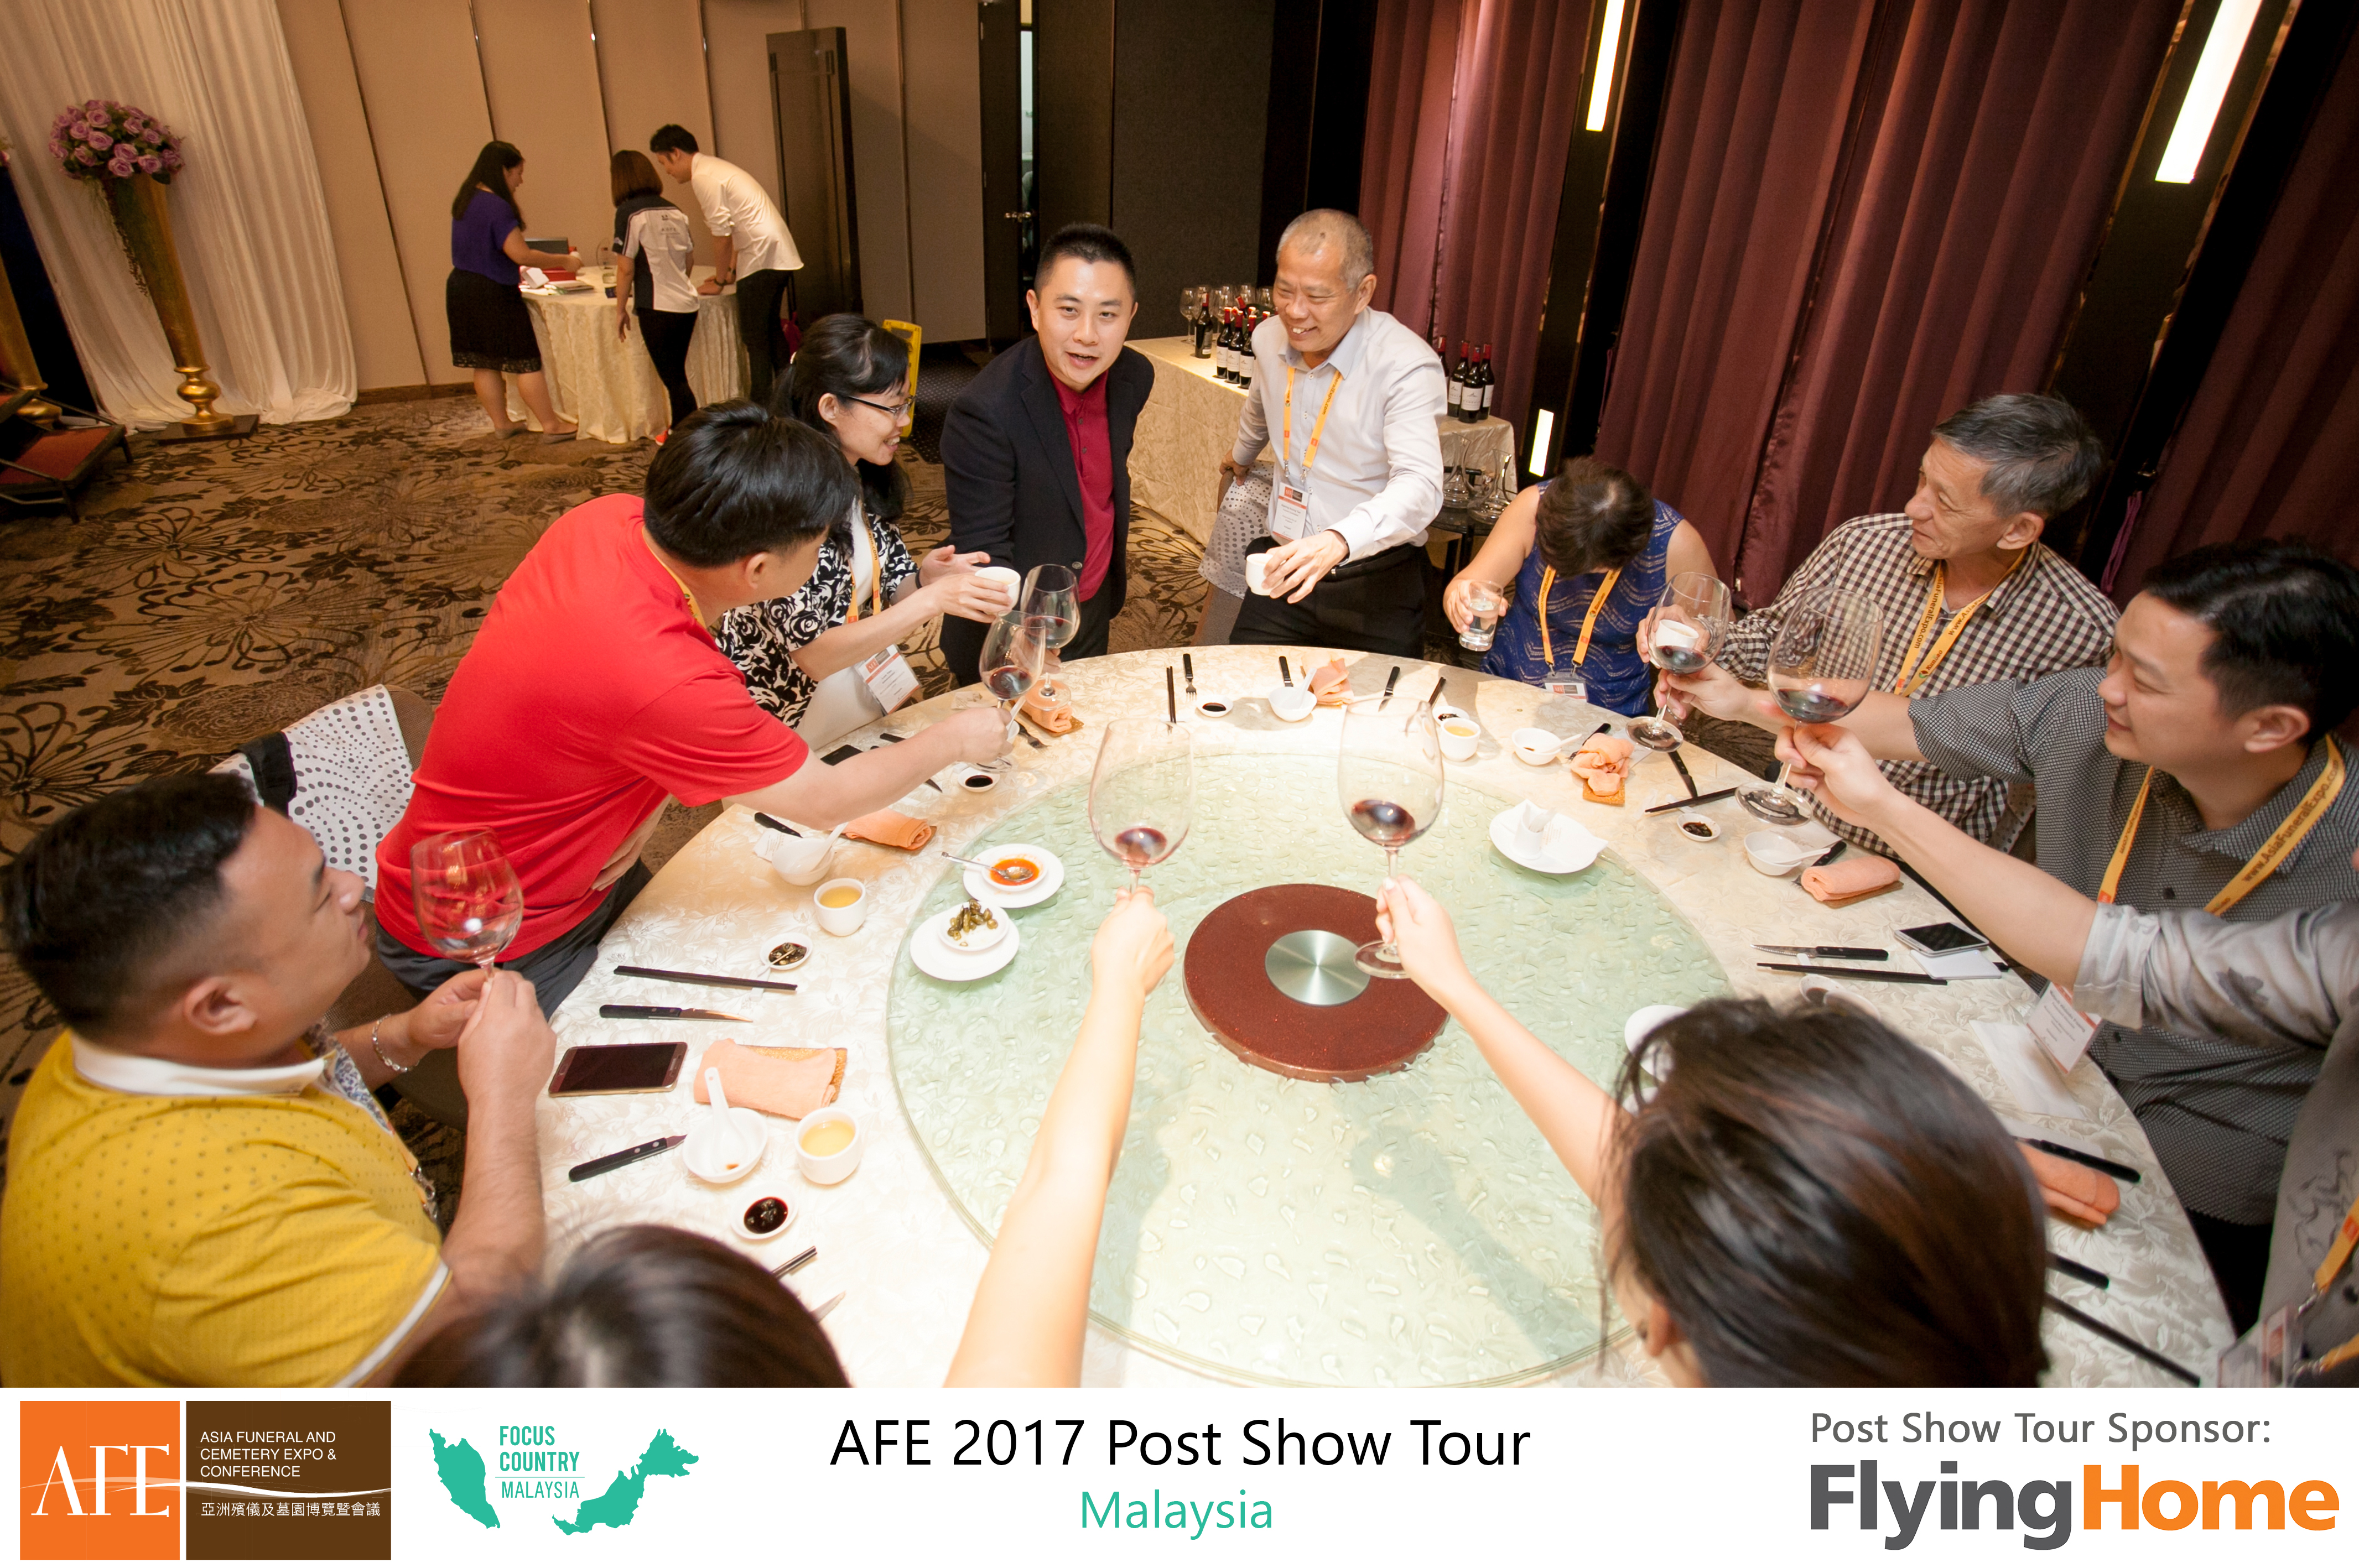 AFE Post Show Tour 2017 Day 2 - 87